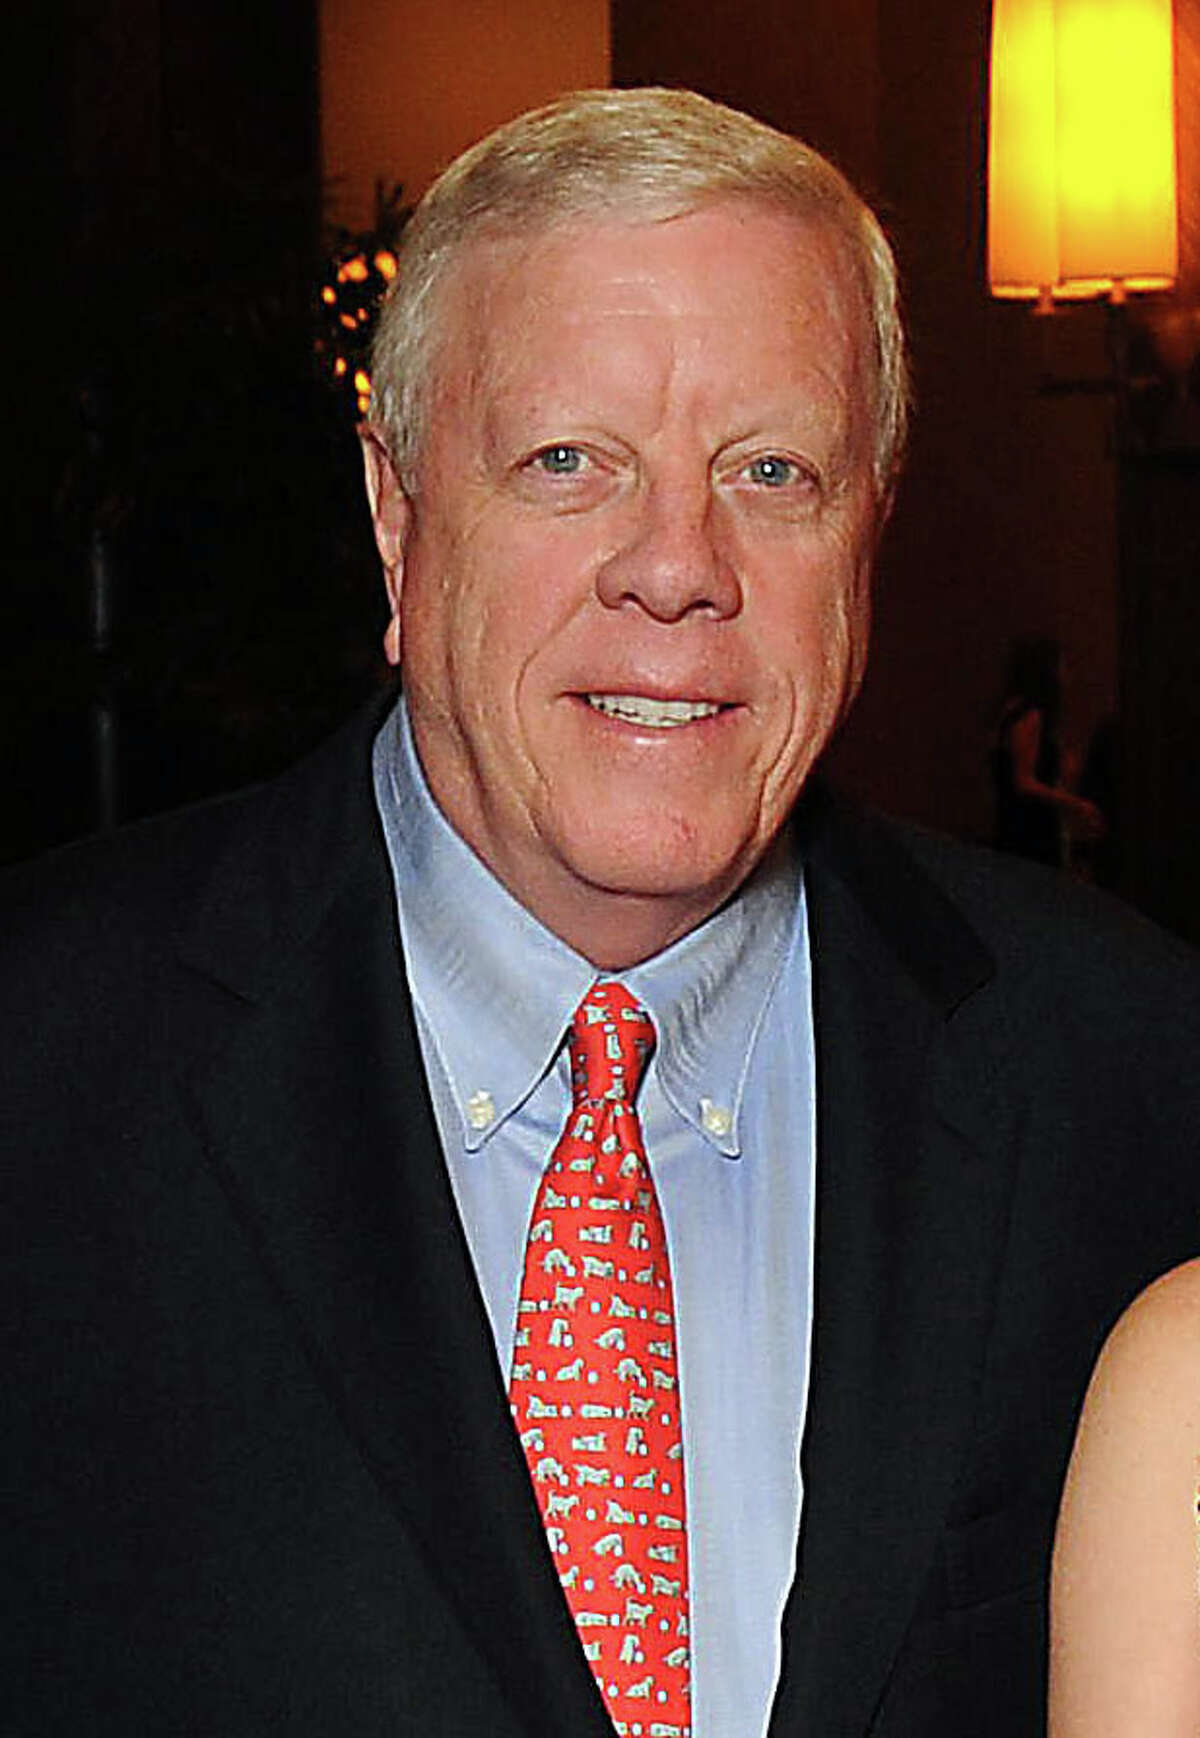 Richard Kinder The chair of oil and gas pipeline giant Kinder Morgan ranked No. 74 on the list, keeping his position as Houston's richest person with a net worth of $6.7 billion.